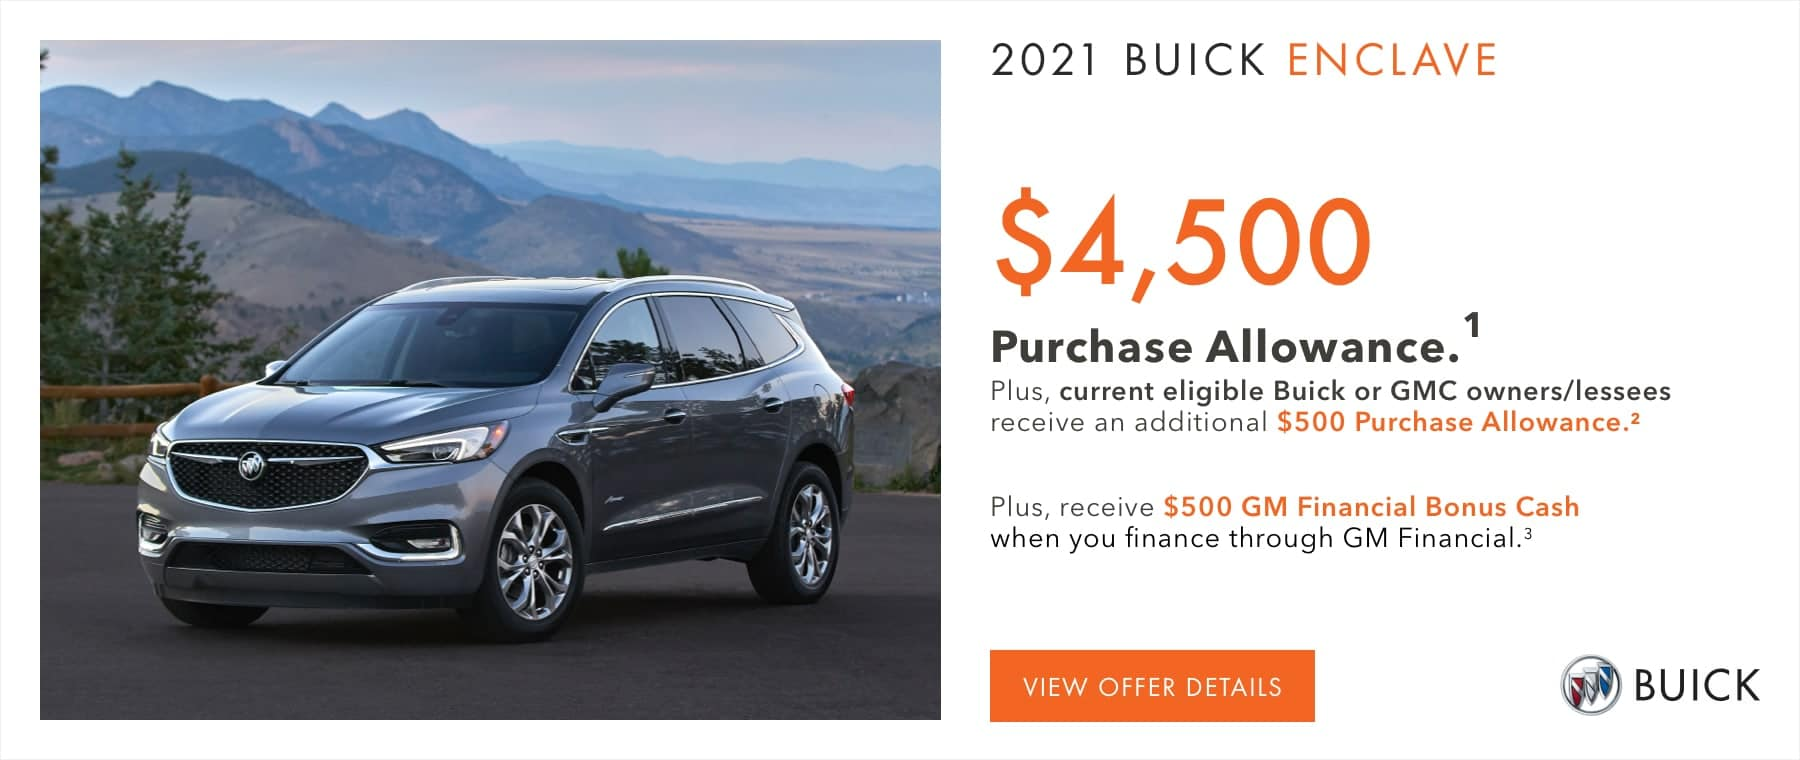 $4,500 Purchase Allowance.1 Plus, current eligible Buick or GMC owners/lessees receive an additional $500 Purchase Allowance.2 Plus, receive $500 GM Financial Bonus Cash when you finance through GM Financial.3